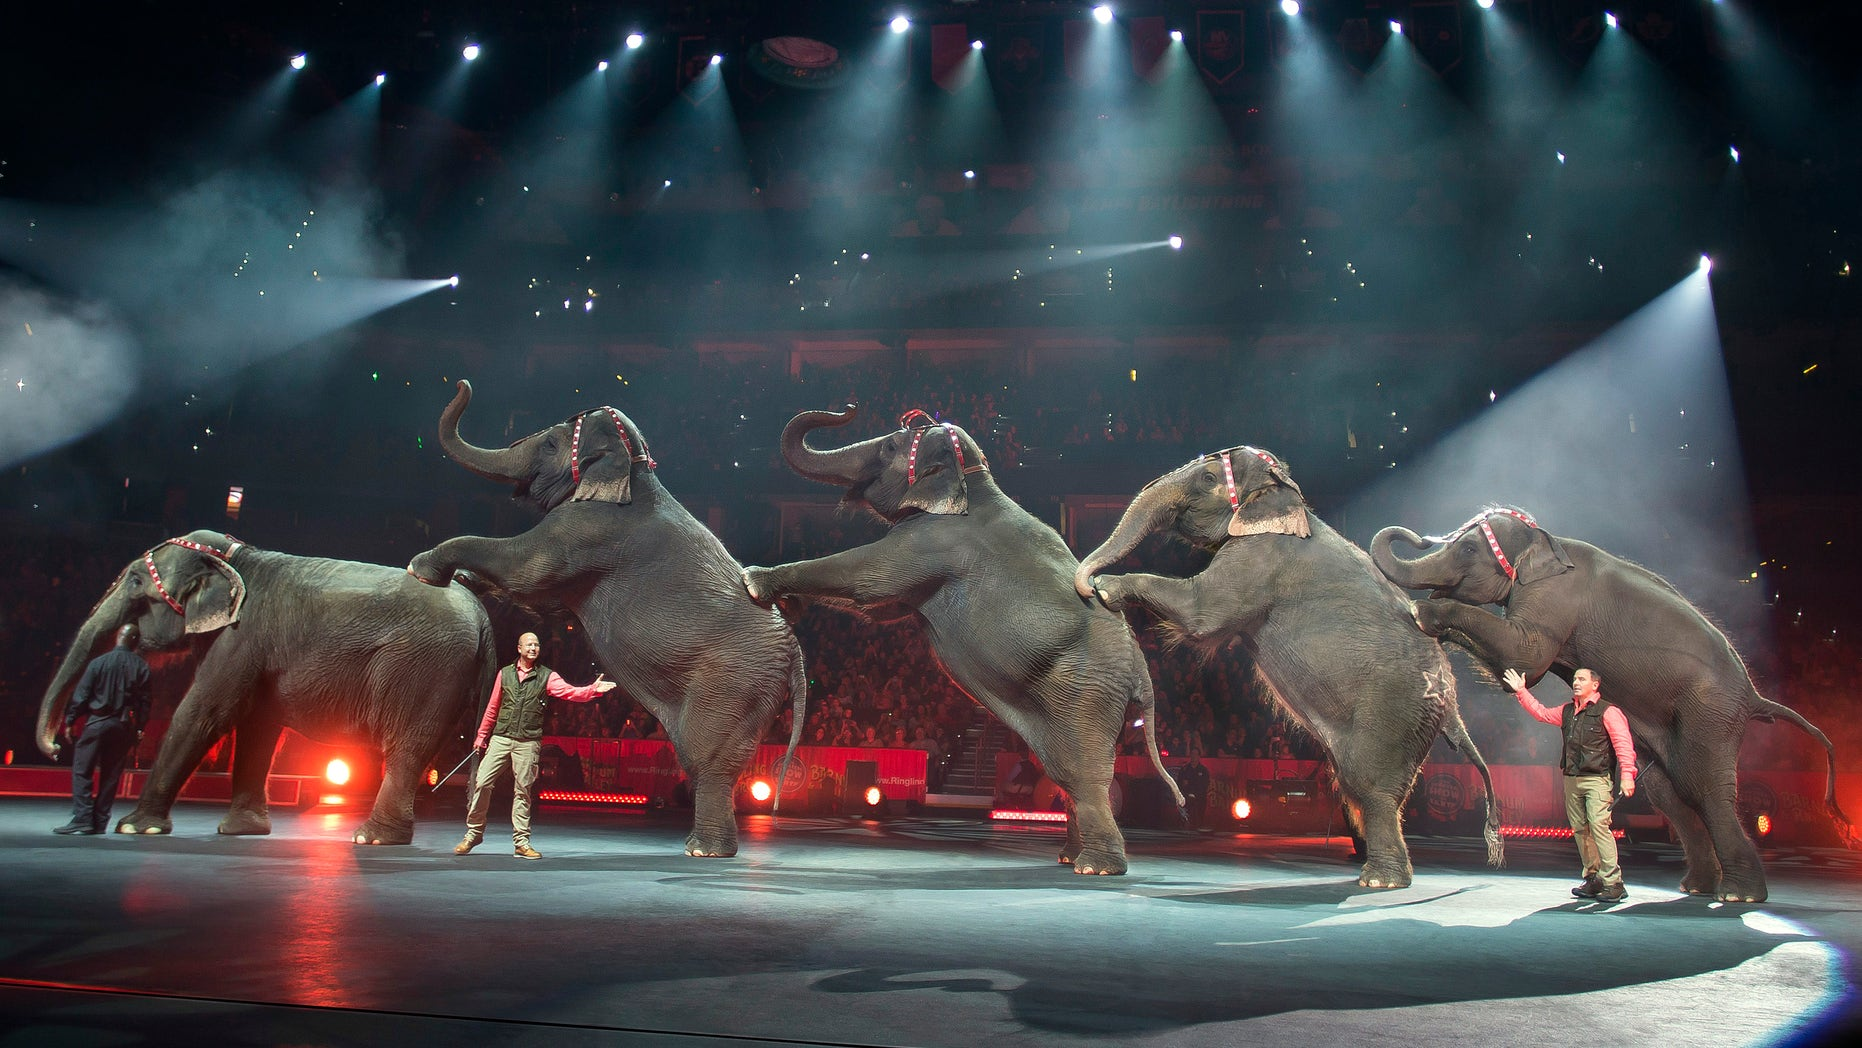 In this Jan. 3, 2015 photo provided by Feld Entertainment Inc., elephants perform at the Ringling Bros. and Barnum & Bailey Circus, at the Amalie Arena in Tampa, Fla. The Ringling Bros. and Barnum & Bailey Circus said it will phase out its iconic elephant acts by 2018. (AP Photo/Feld Entertainment Inc., Gary Bogdon)